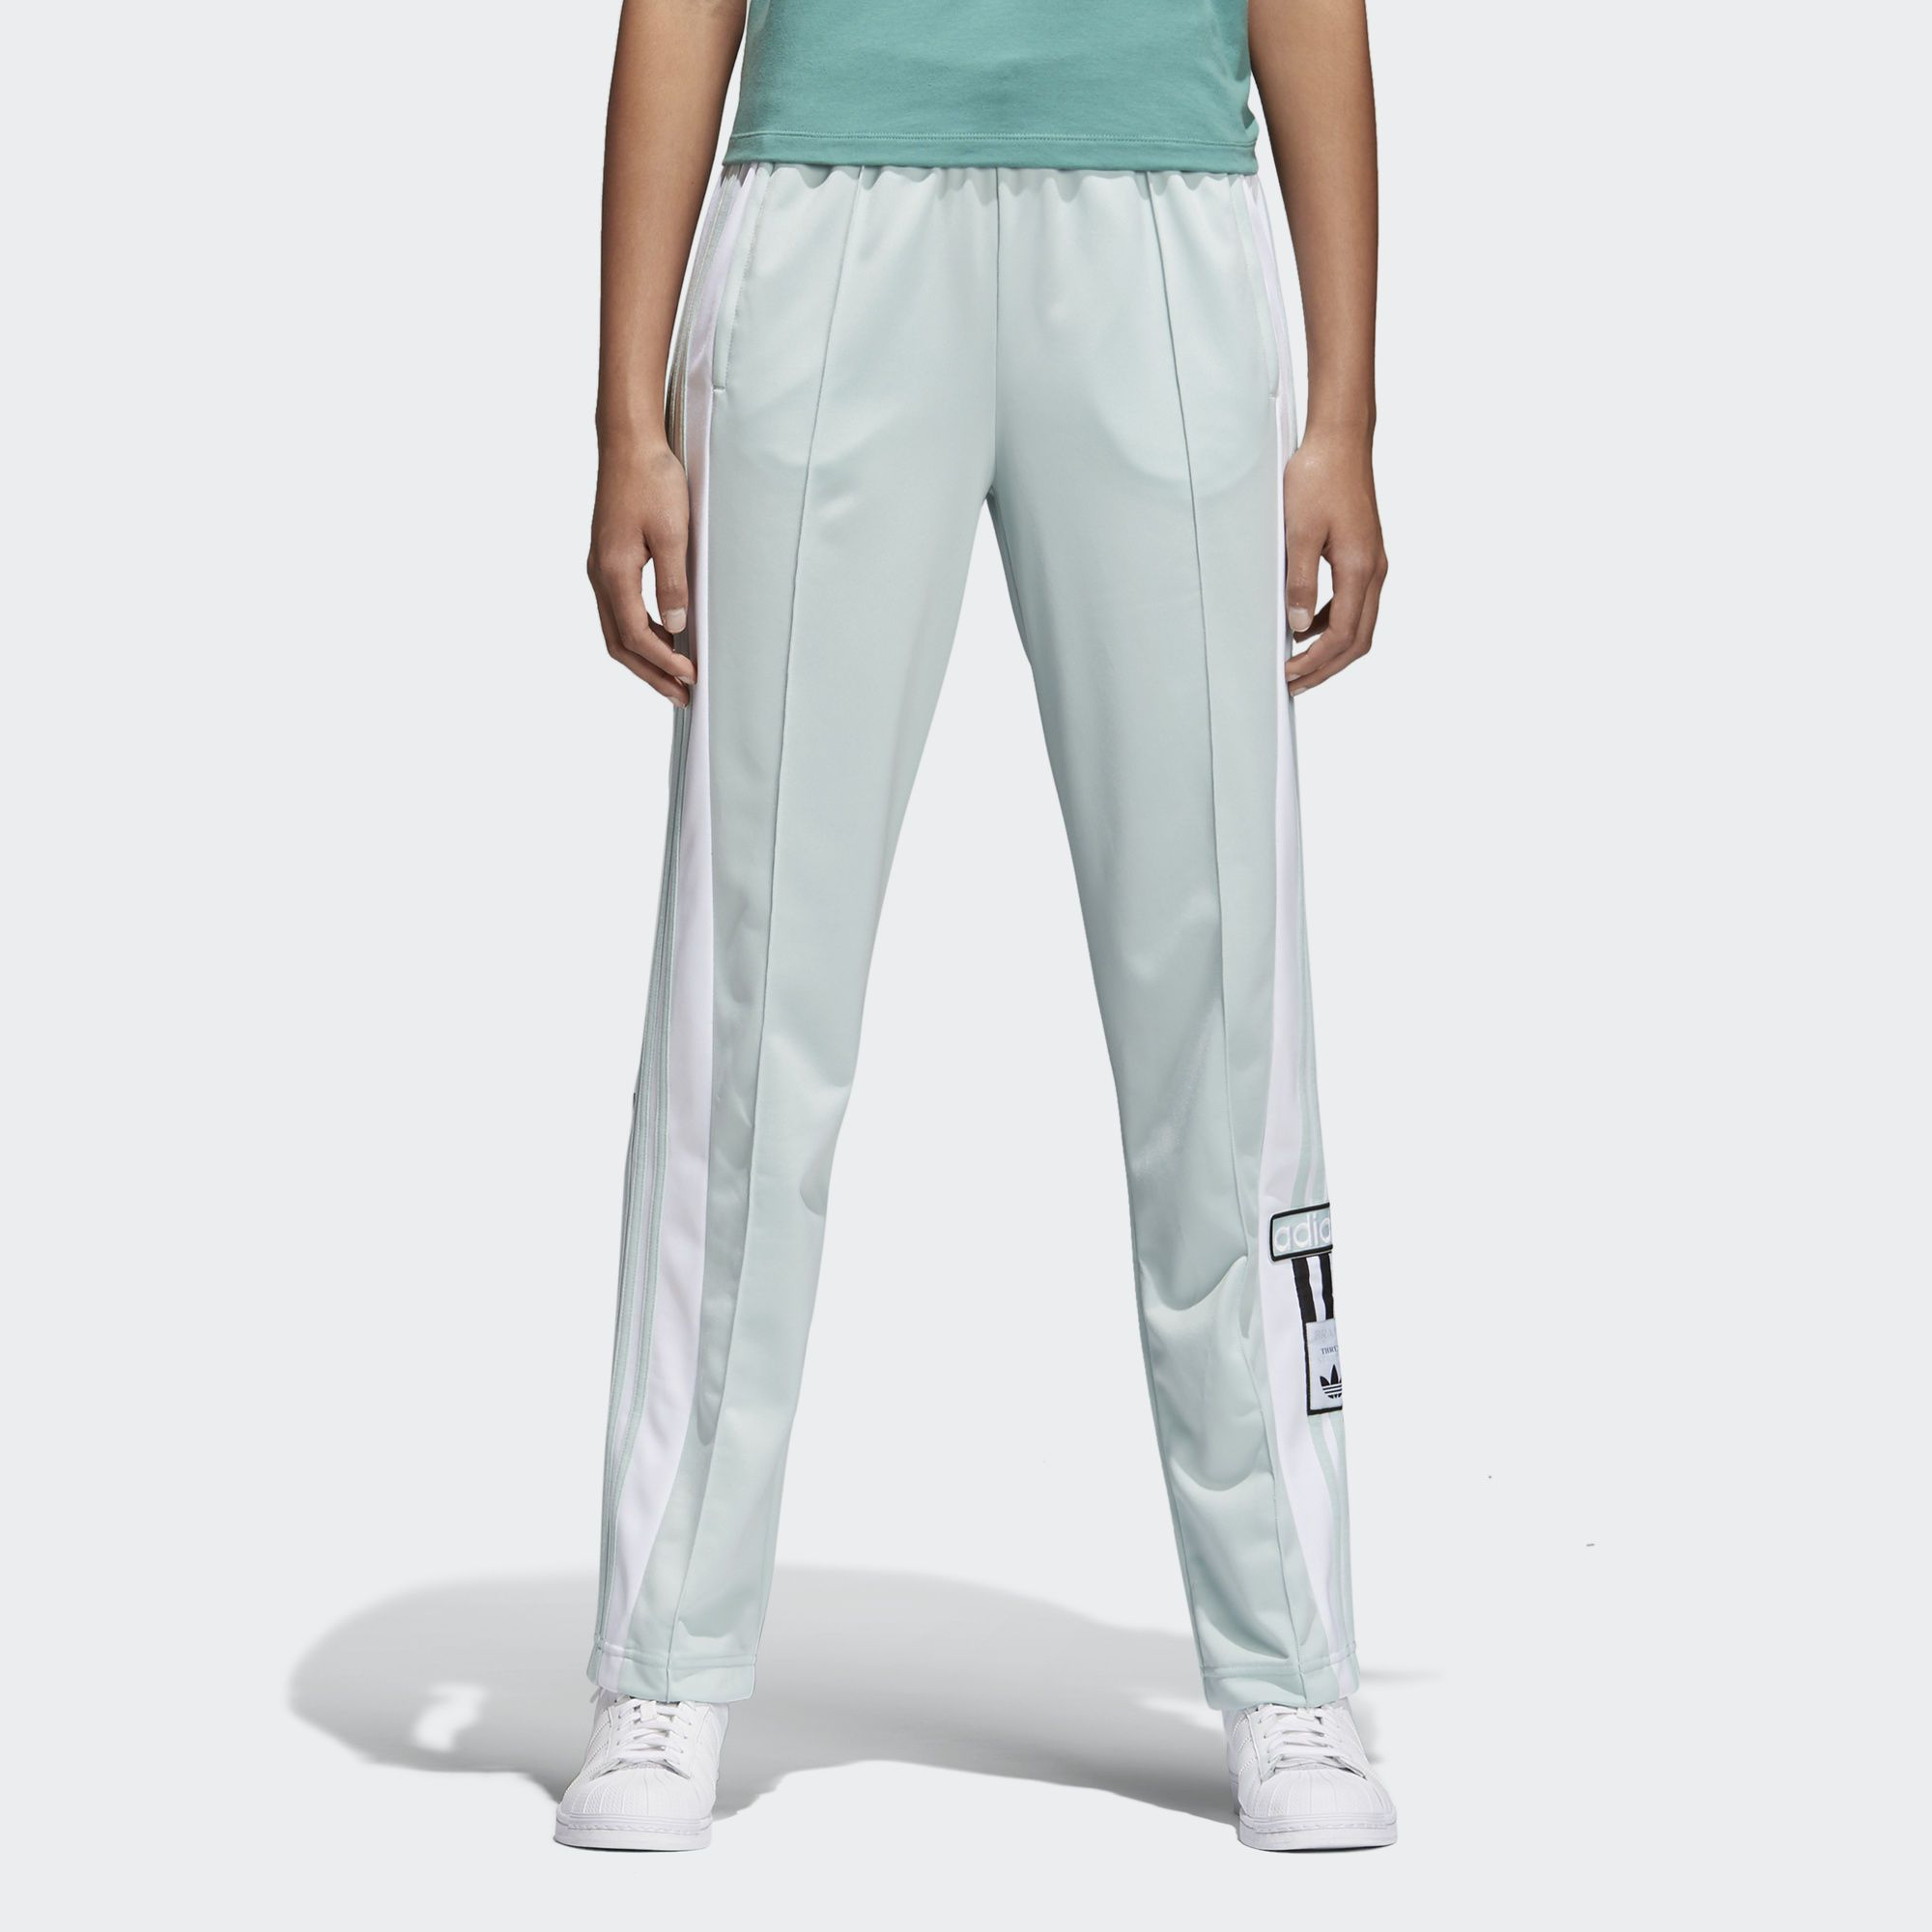 c5635a34977 Recognizable 3-Stripes down the sides of these women's track pants keep the  modern look pulsing with adidas heritage. Bringing back an iconic style, ...